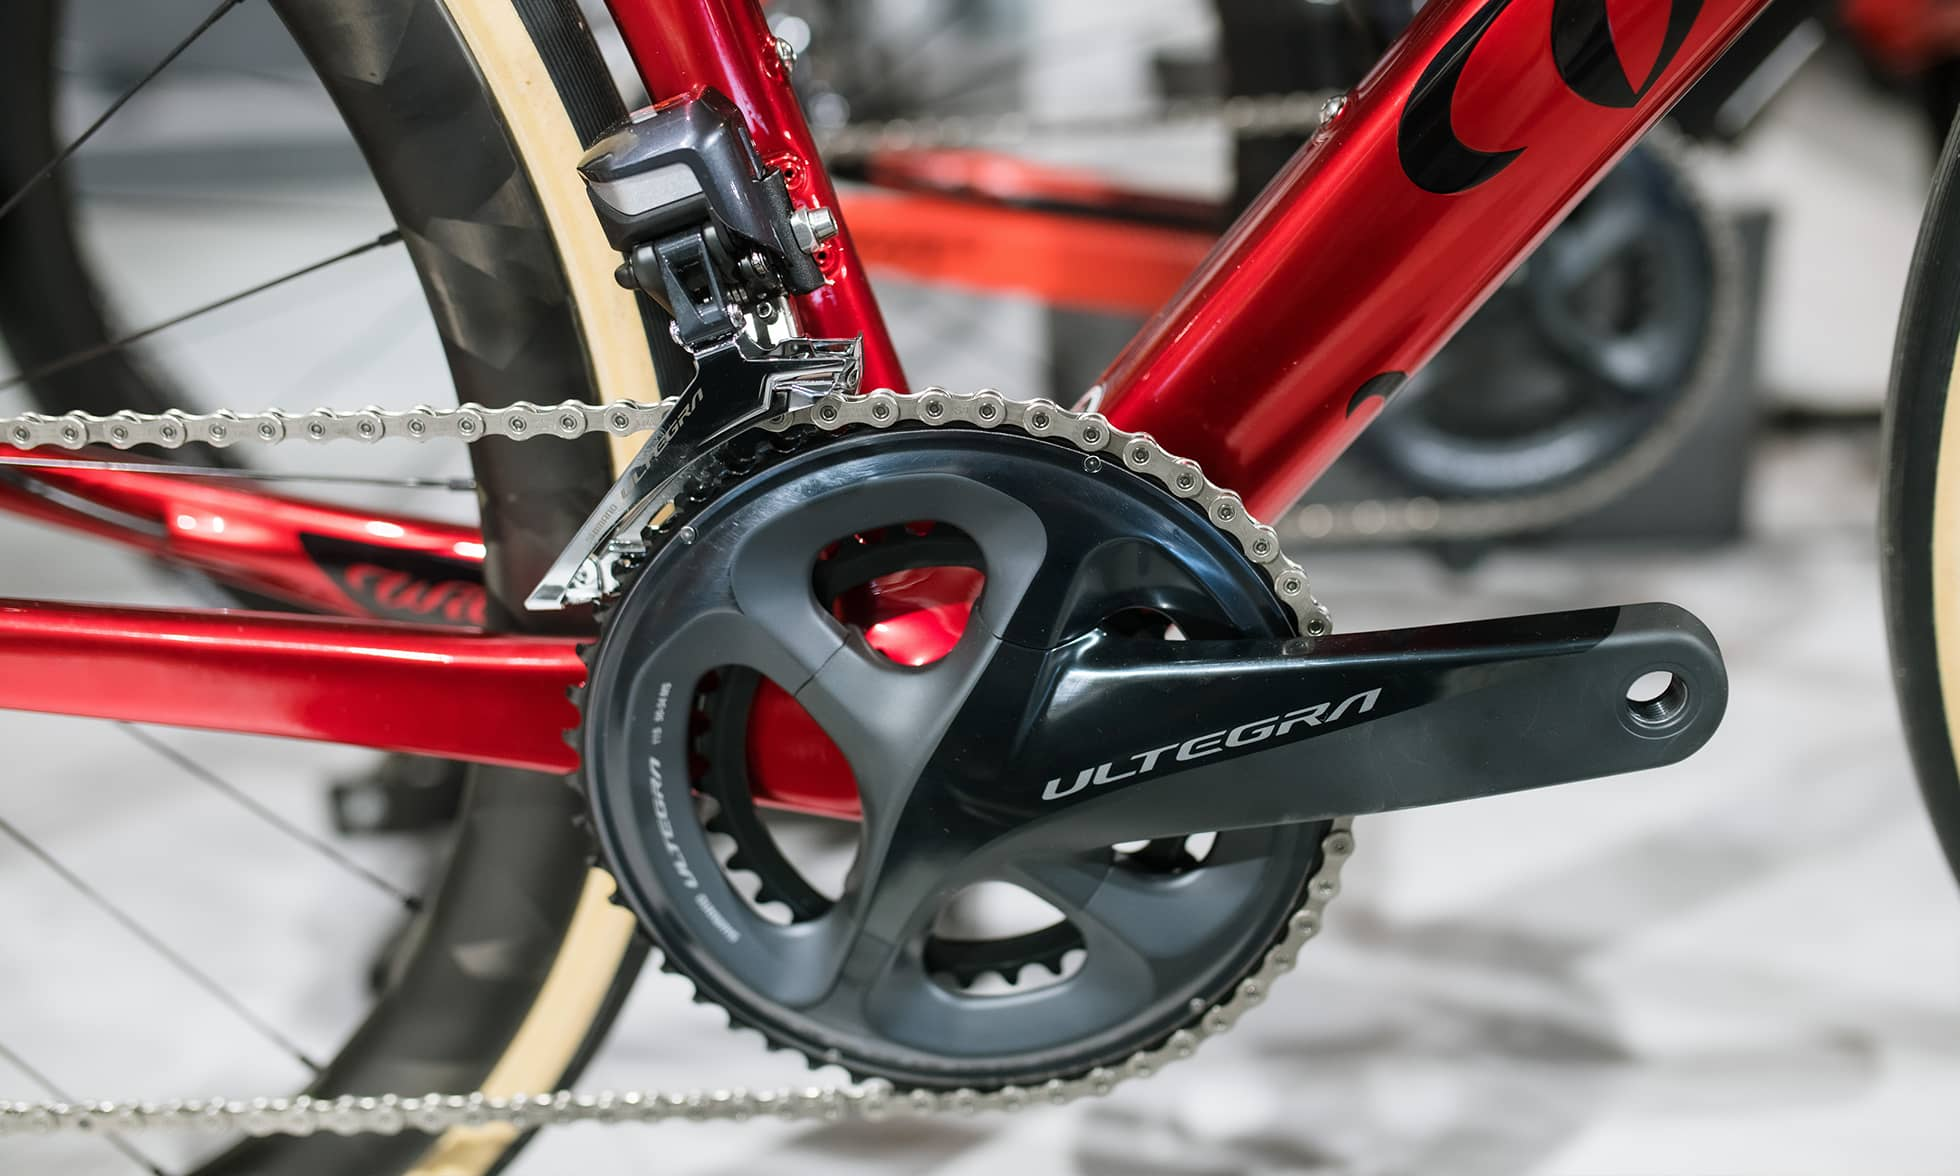 Close-up of chainwheel from red racing bike